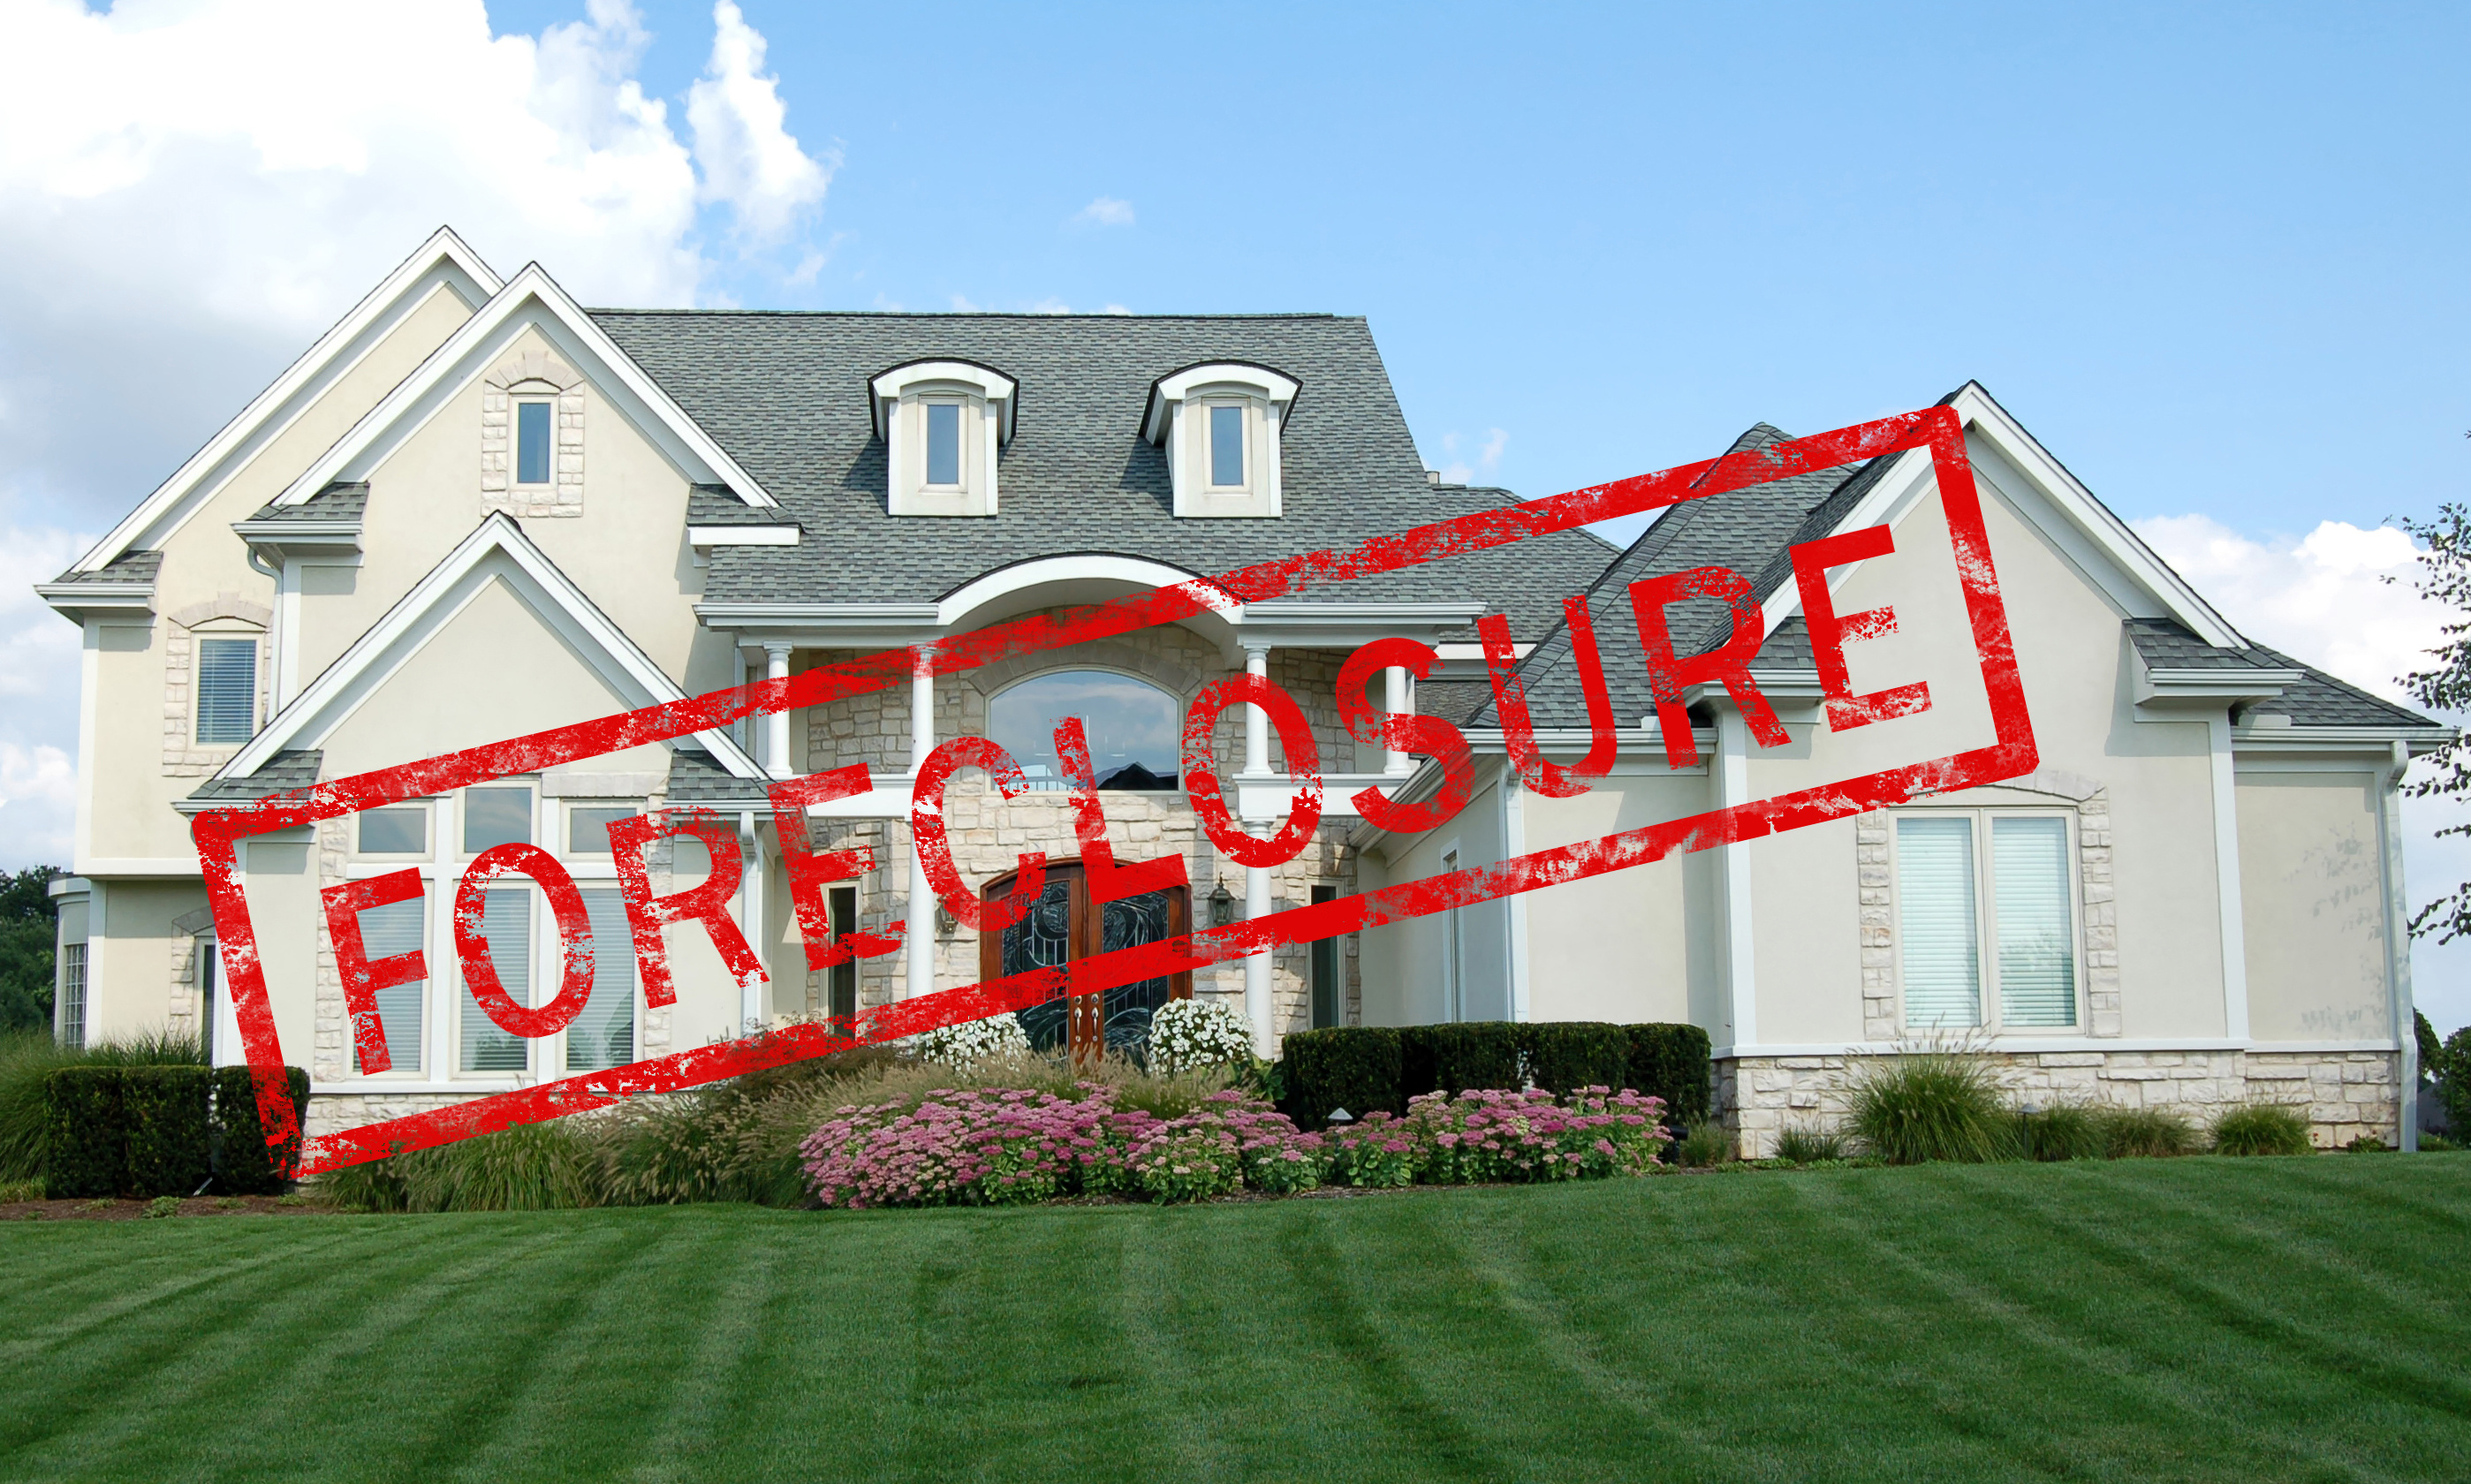 Call Barnes Appraisal Company when you need appraisals pertaining to Comanche foreclosures